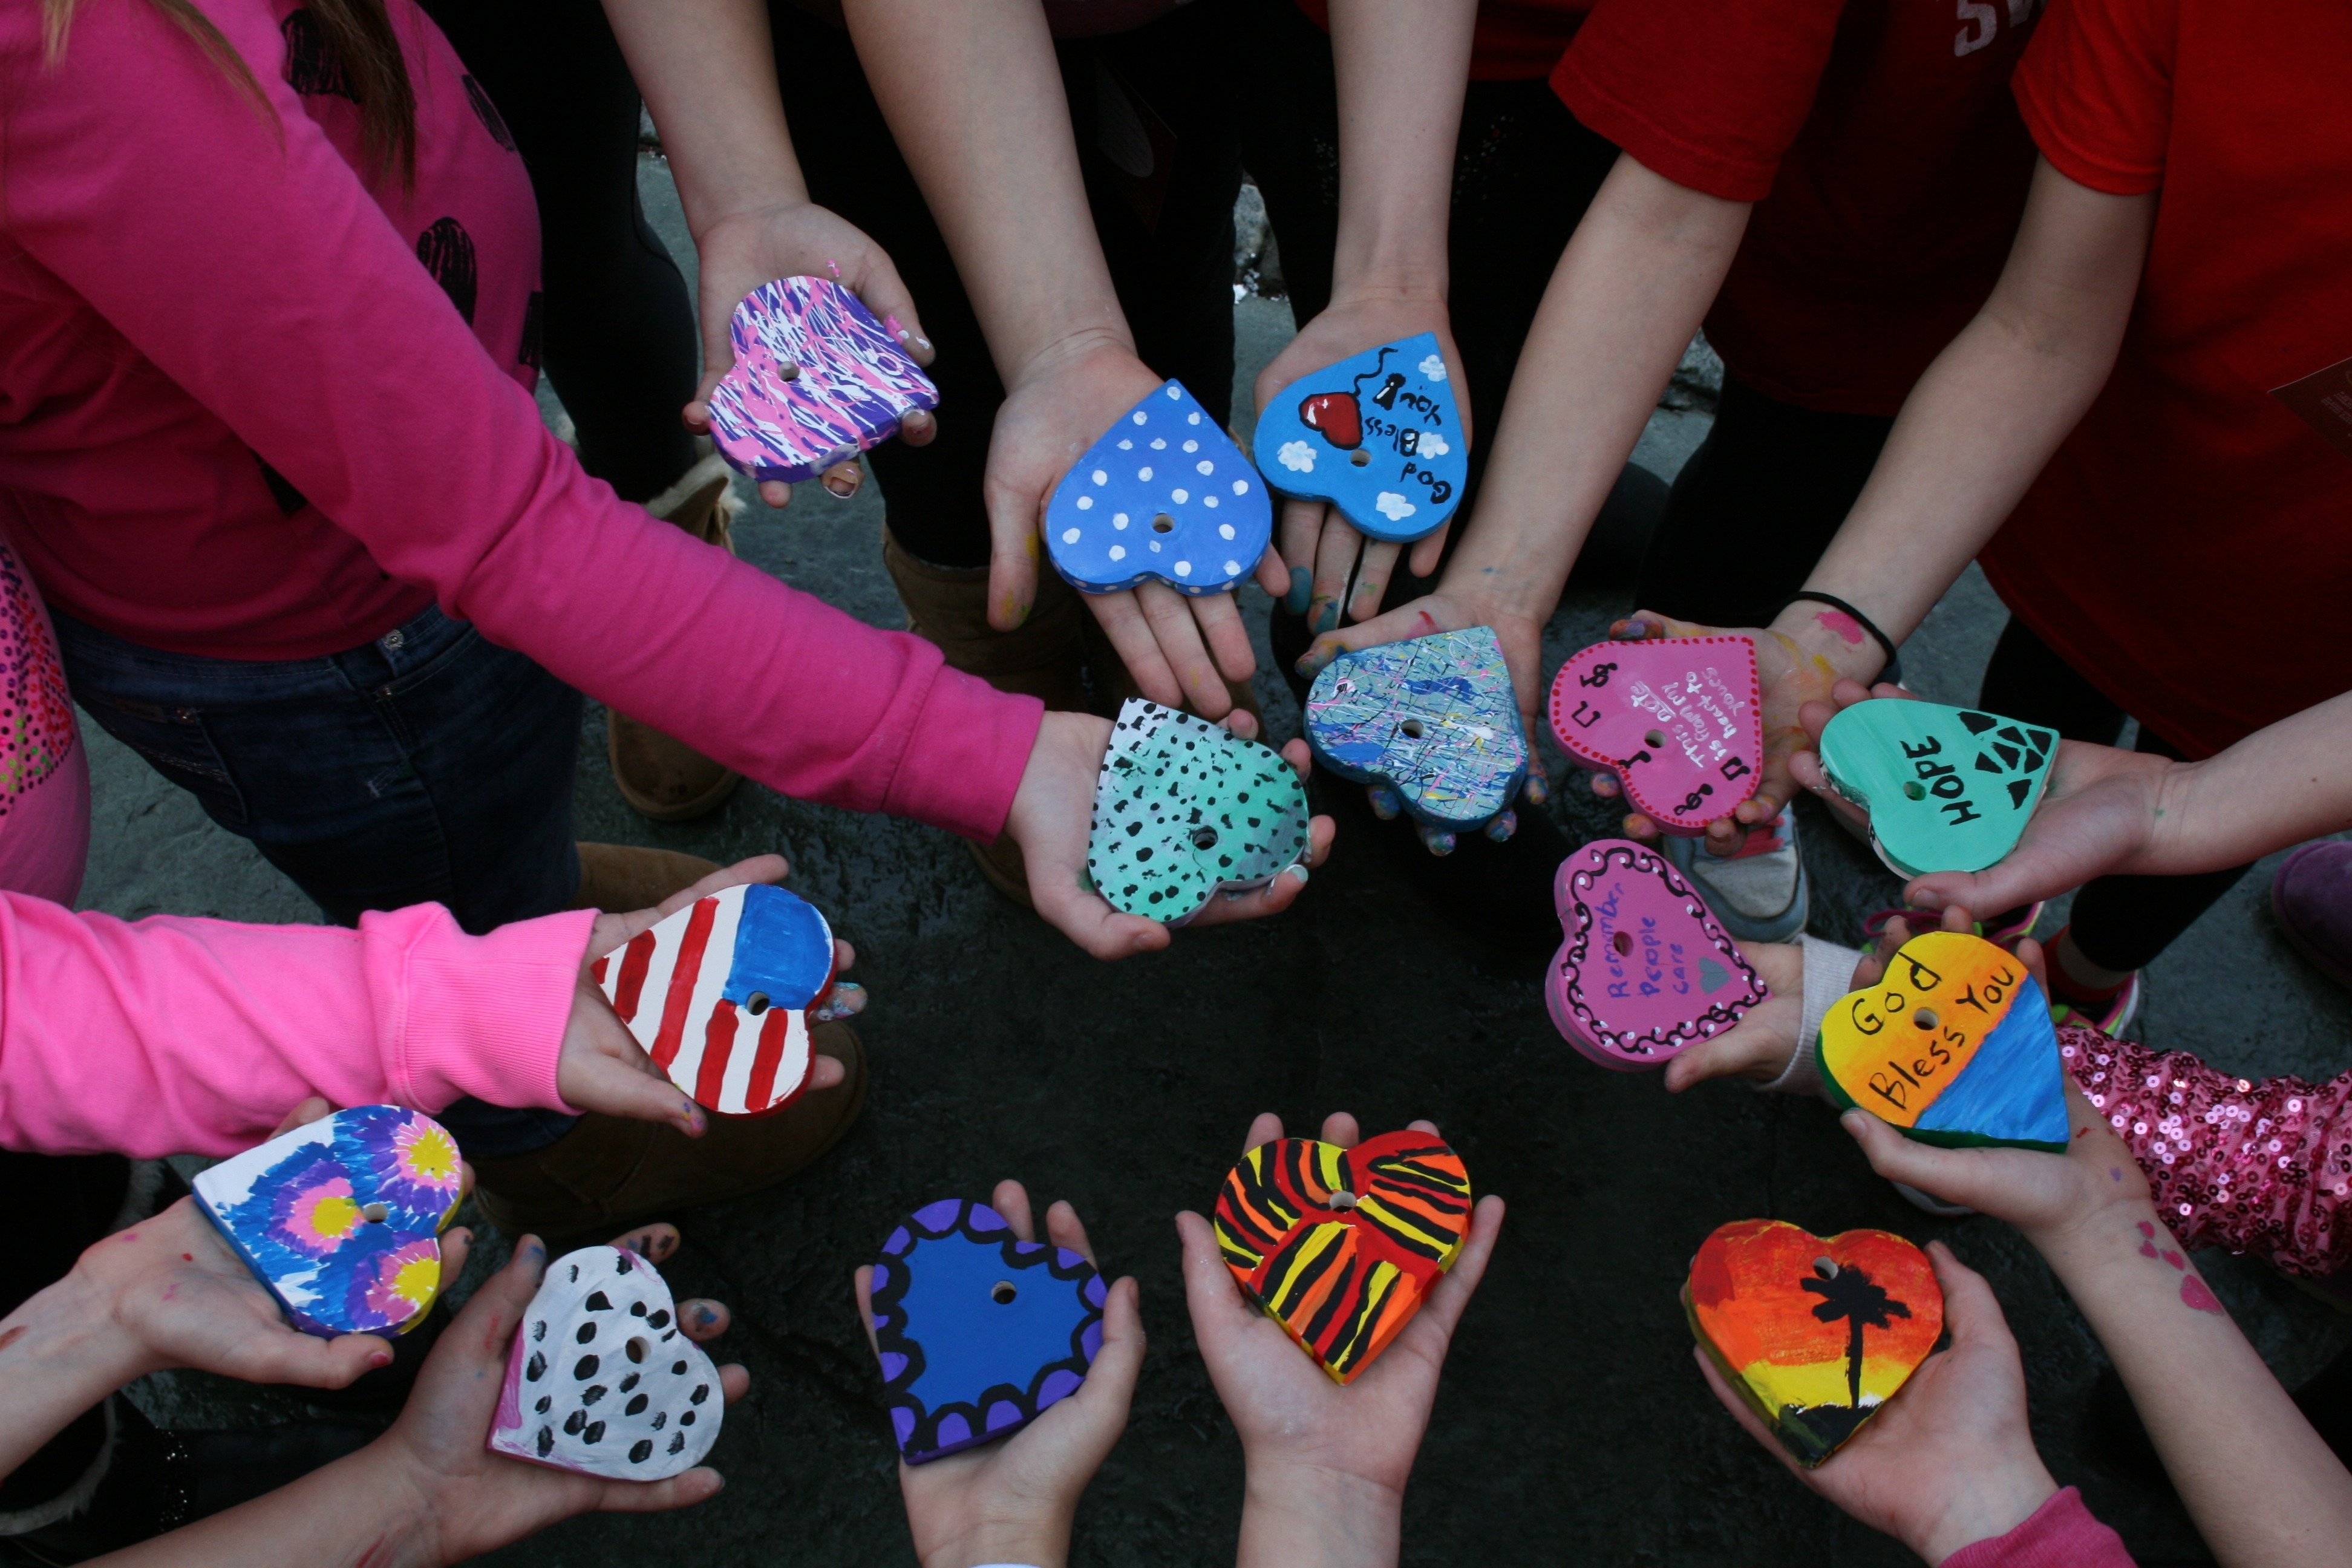 10 Nice Pay It Forward Project Ideas montville girl scouts pay it forward with hearts of hope project 2020